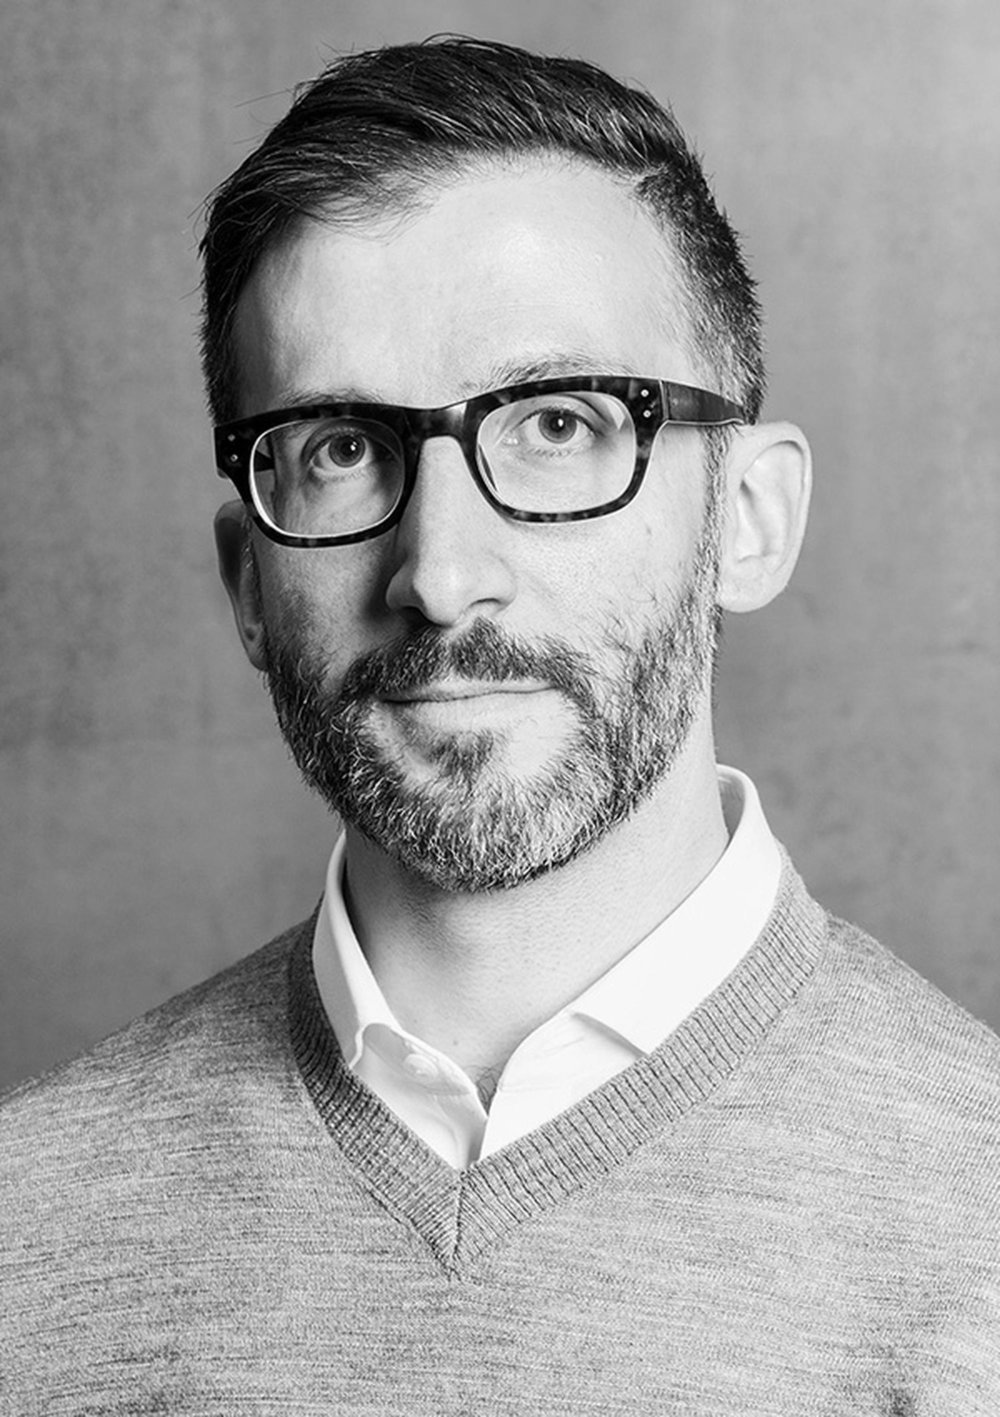 David Hartman, Target David is Creative Director of the Brand Design Lab at Target, where he oversees identity and design programs for 15 brands across home, apparel, grocery and essentials, encompassing 10,000+ SKUs and over $10B in value.